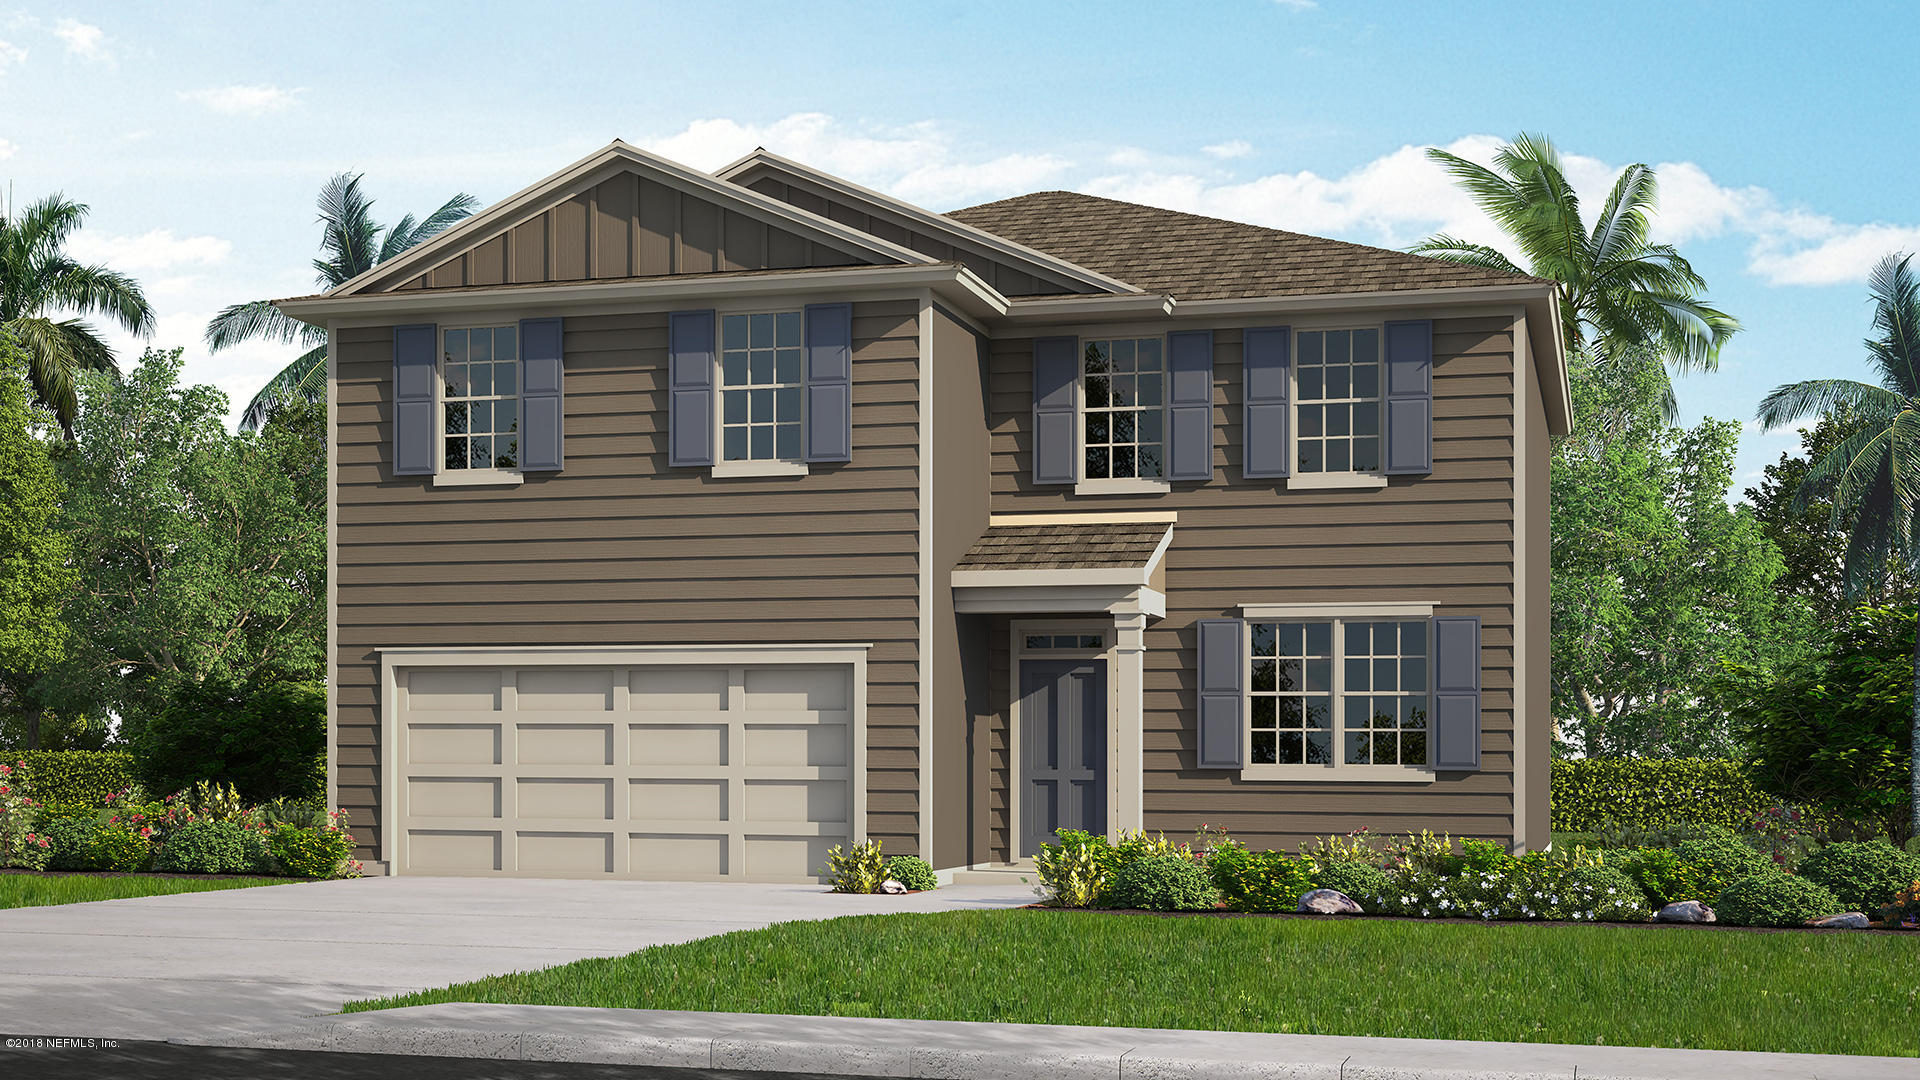 7136 COTTON BEND, JACKSONVILLE, FLORIDA 32220, 4 Bedrooms Bedrooms, ,2 BathroomsBathrooms,Residential - single family,For sale,COTTON BEND,952503